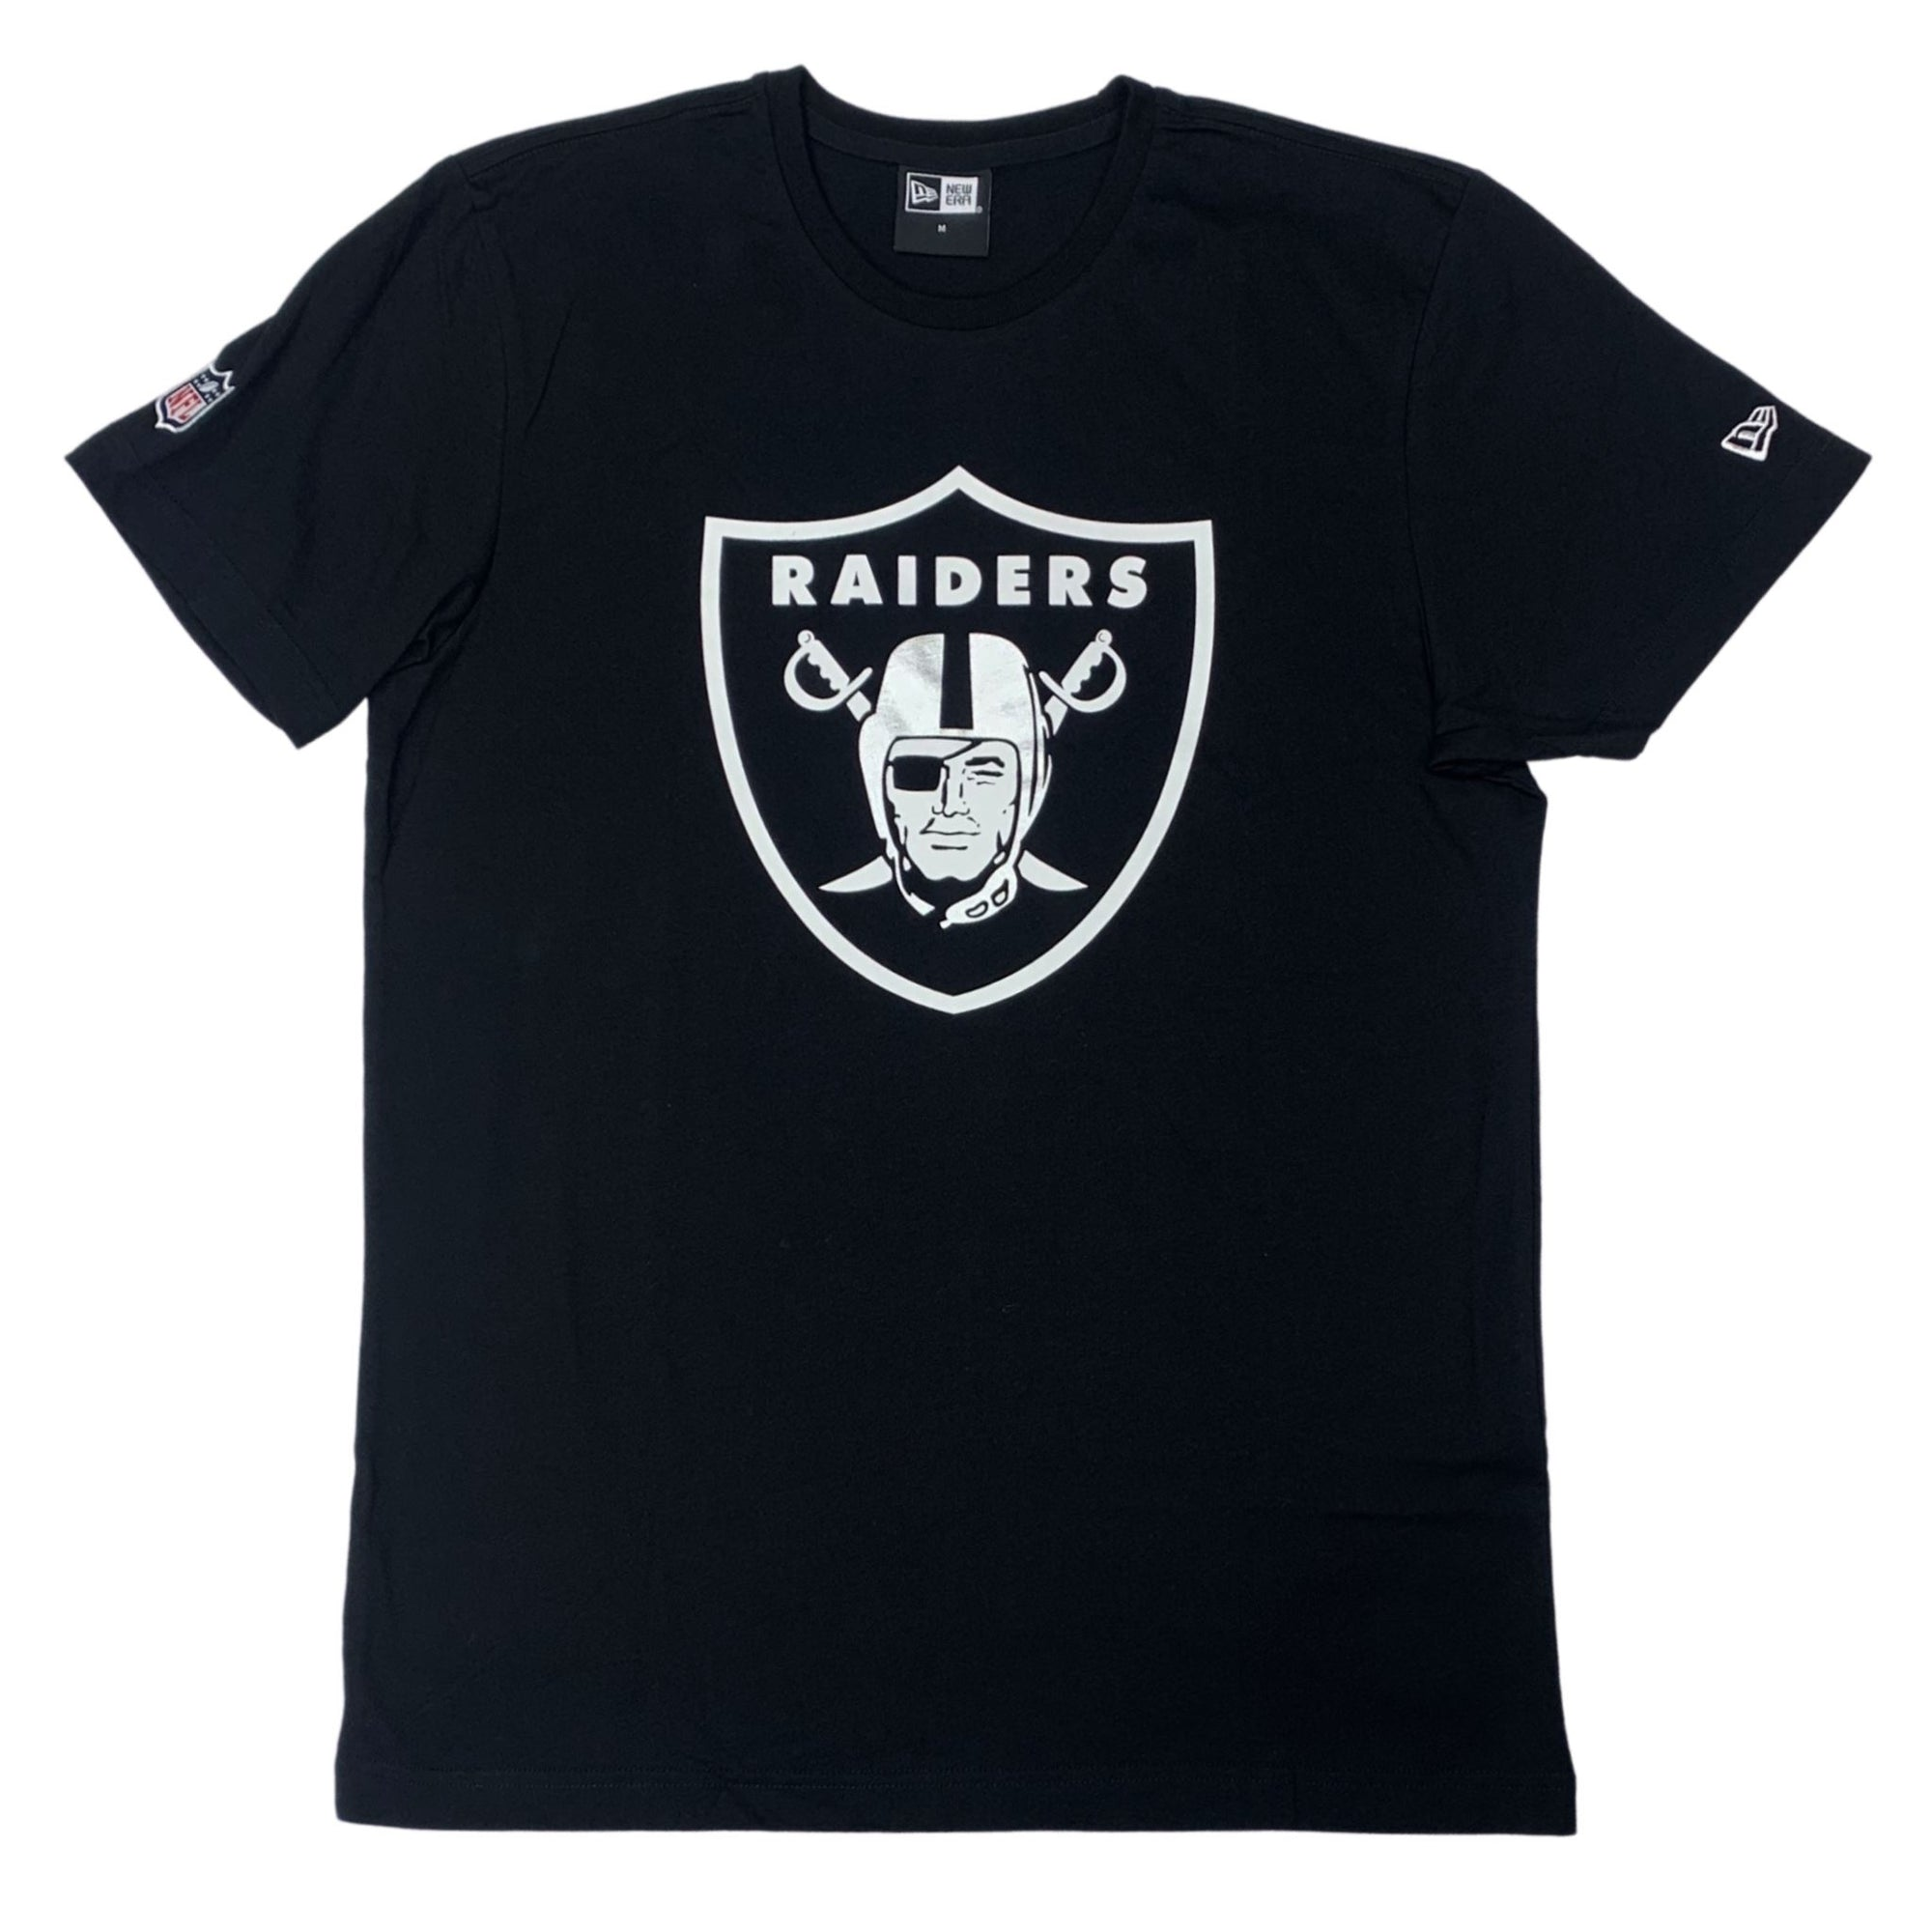 New Era Oakland Raiders Essential Tee - Black/Silver SP-ApparelTees-Mens New Era